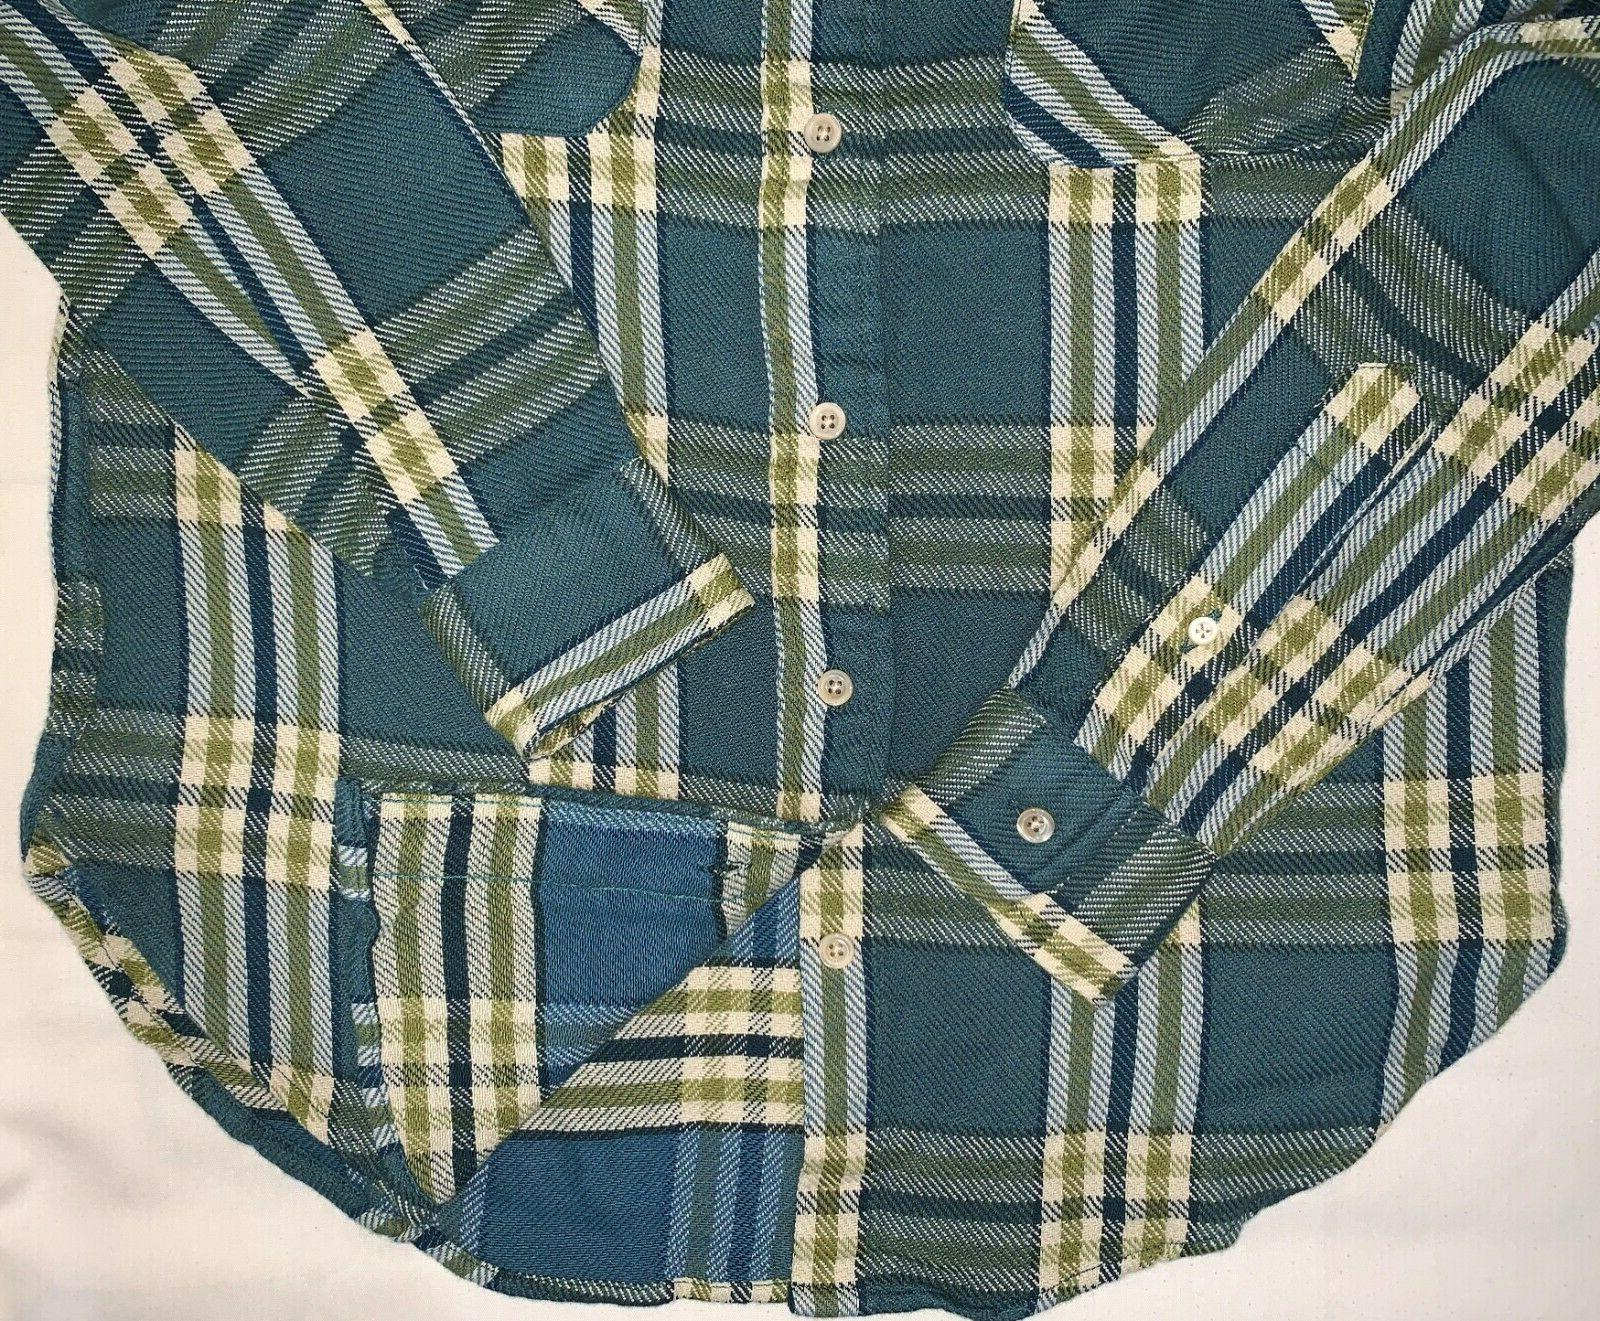 New $195 Levis Clothing Shorthorn Shirt